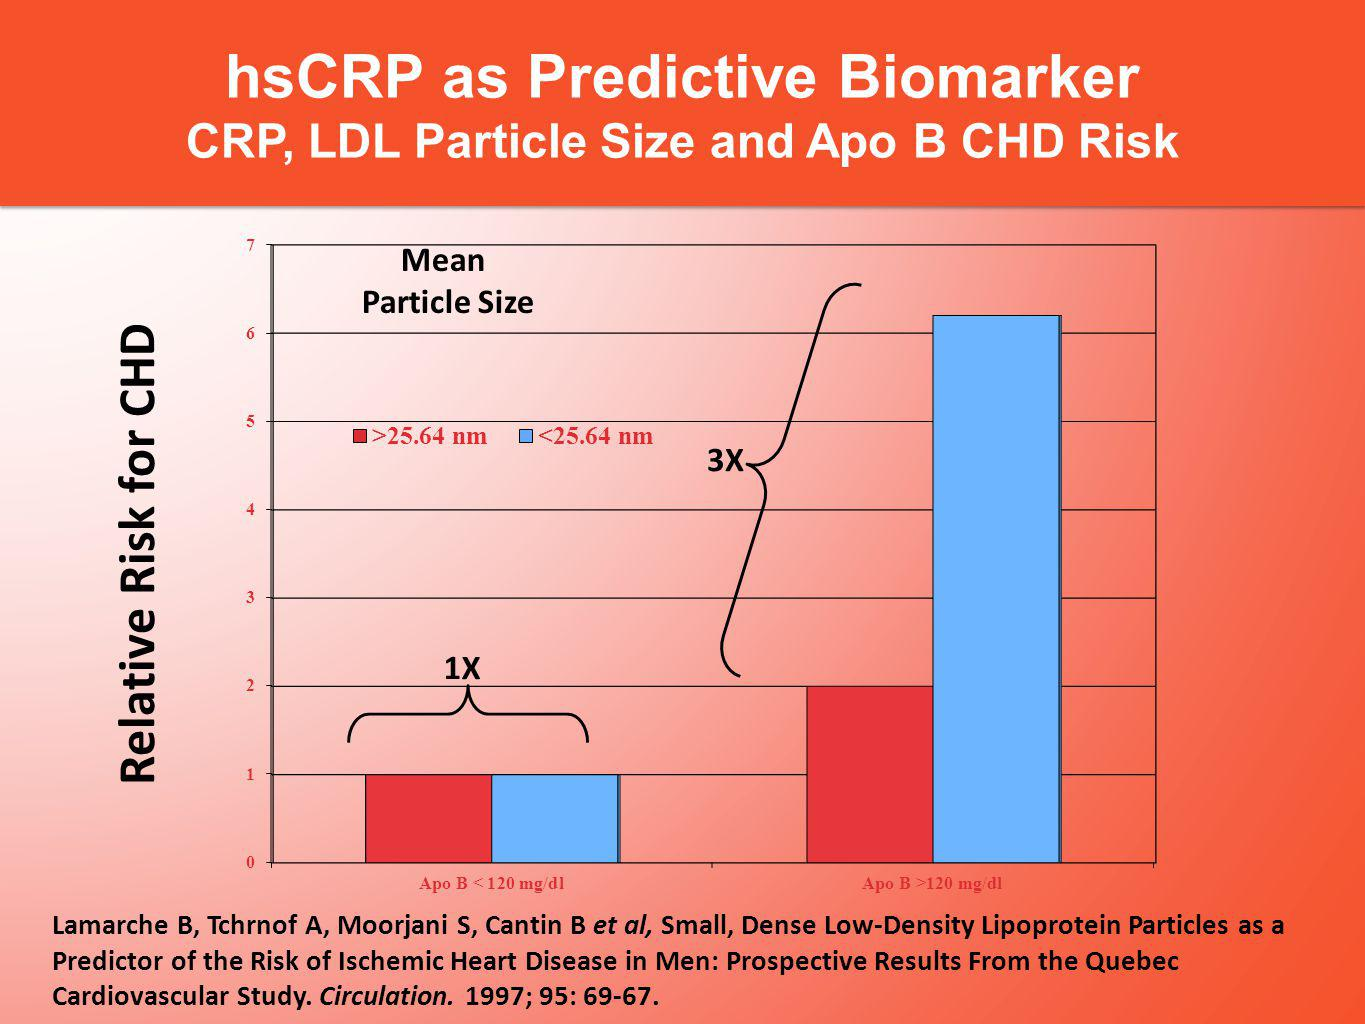 hsCRP as Predictive Biomarker CRP, LDL Particle Size and Apo B CHD Risk Mean Particle Size Relative Risk for CHD 3X 1X Lamarche B, Tchrnof A, Moorjani S, Cantin B et al, Small, Dense Low-Density Lipoprotein Particles as a Predictor of the Risk of Ischemic Heart Disease in Men: Prospective Results From the Quebec Cardiovascular Study.